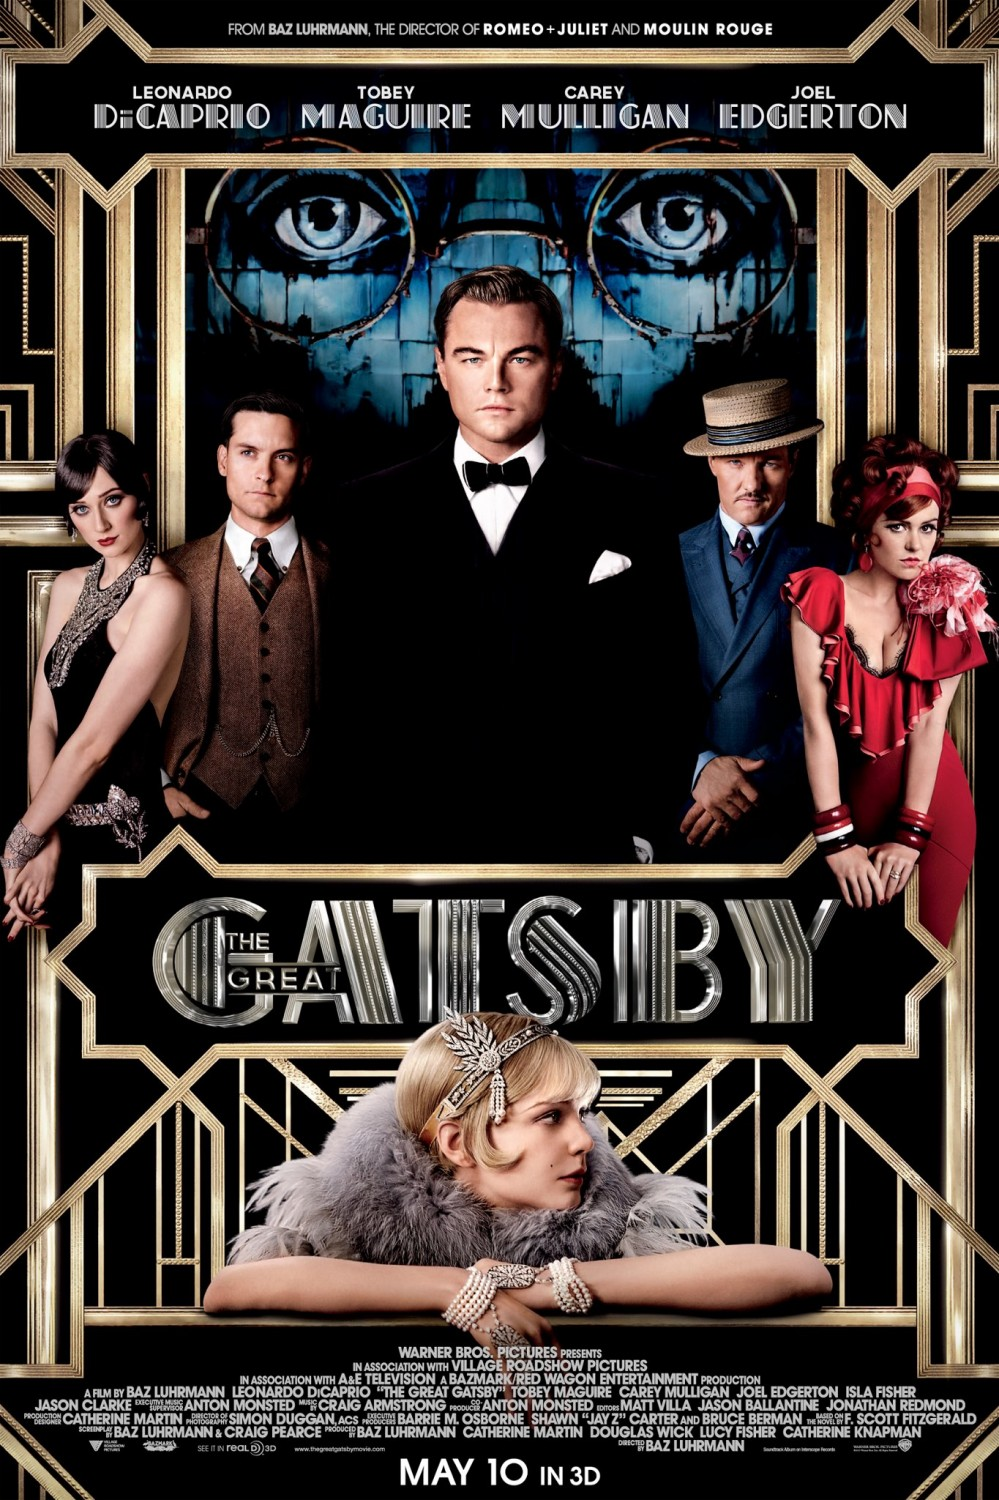 The great gatsby poster1